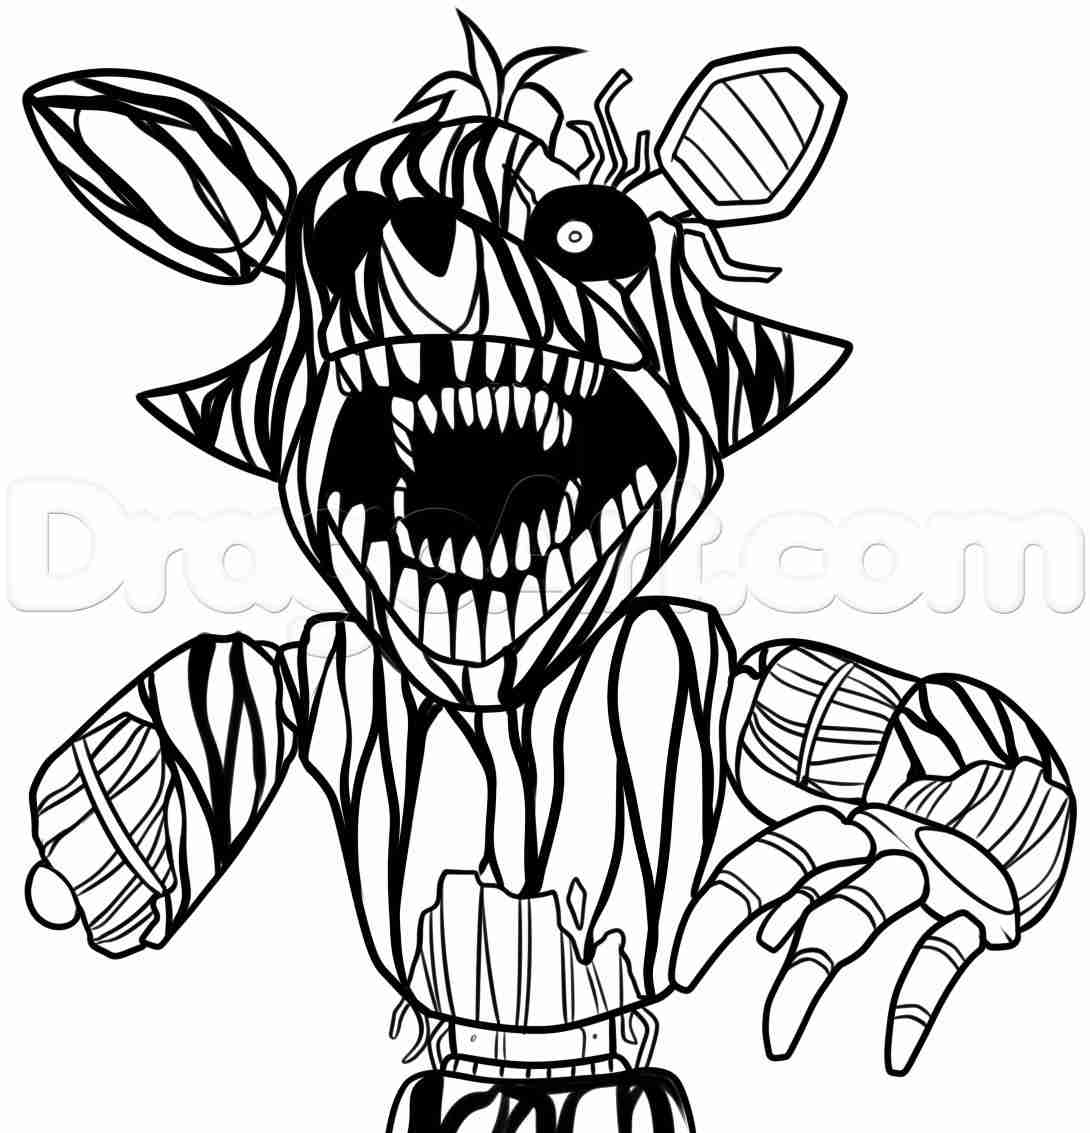 Fnaf Mangle Coloring Pages At Getdrawings Free Download